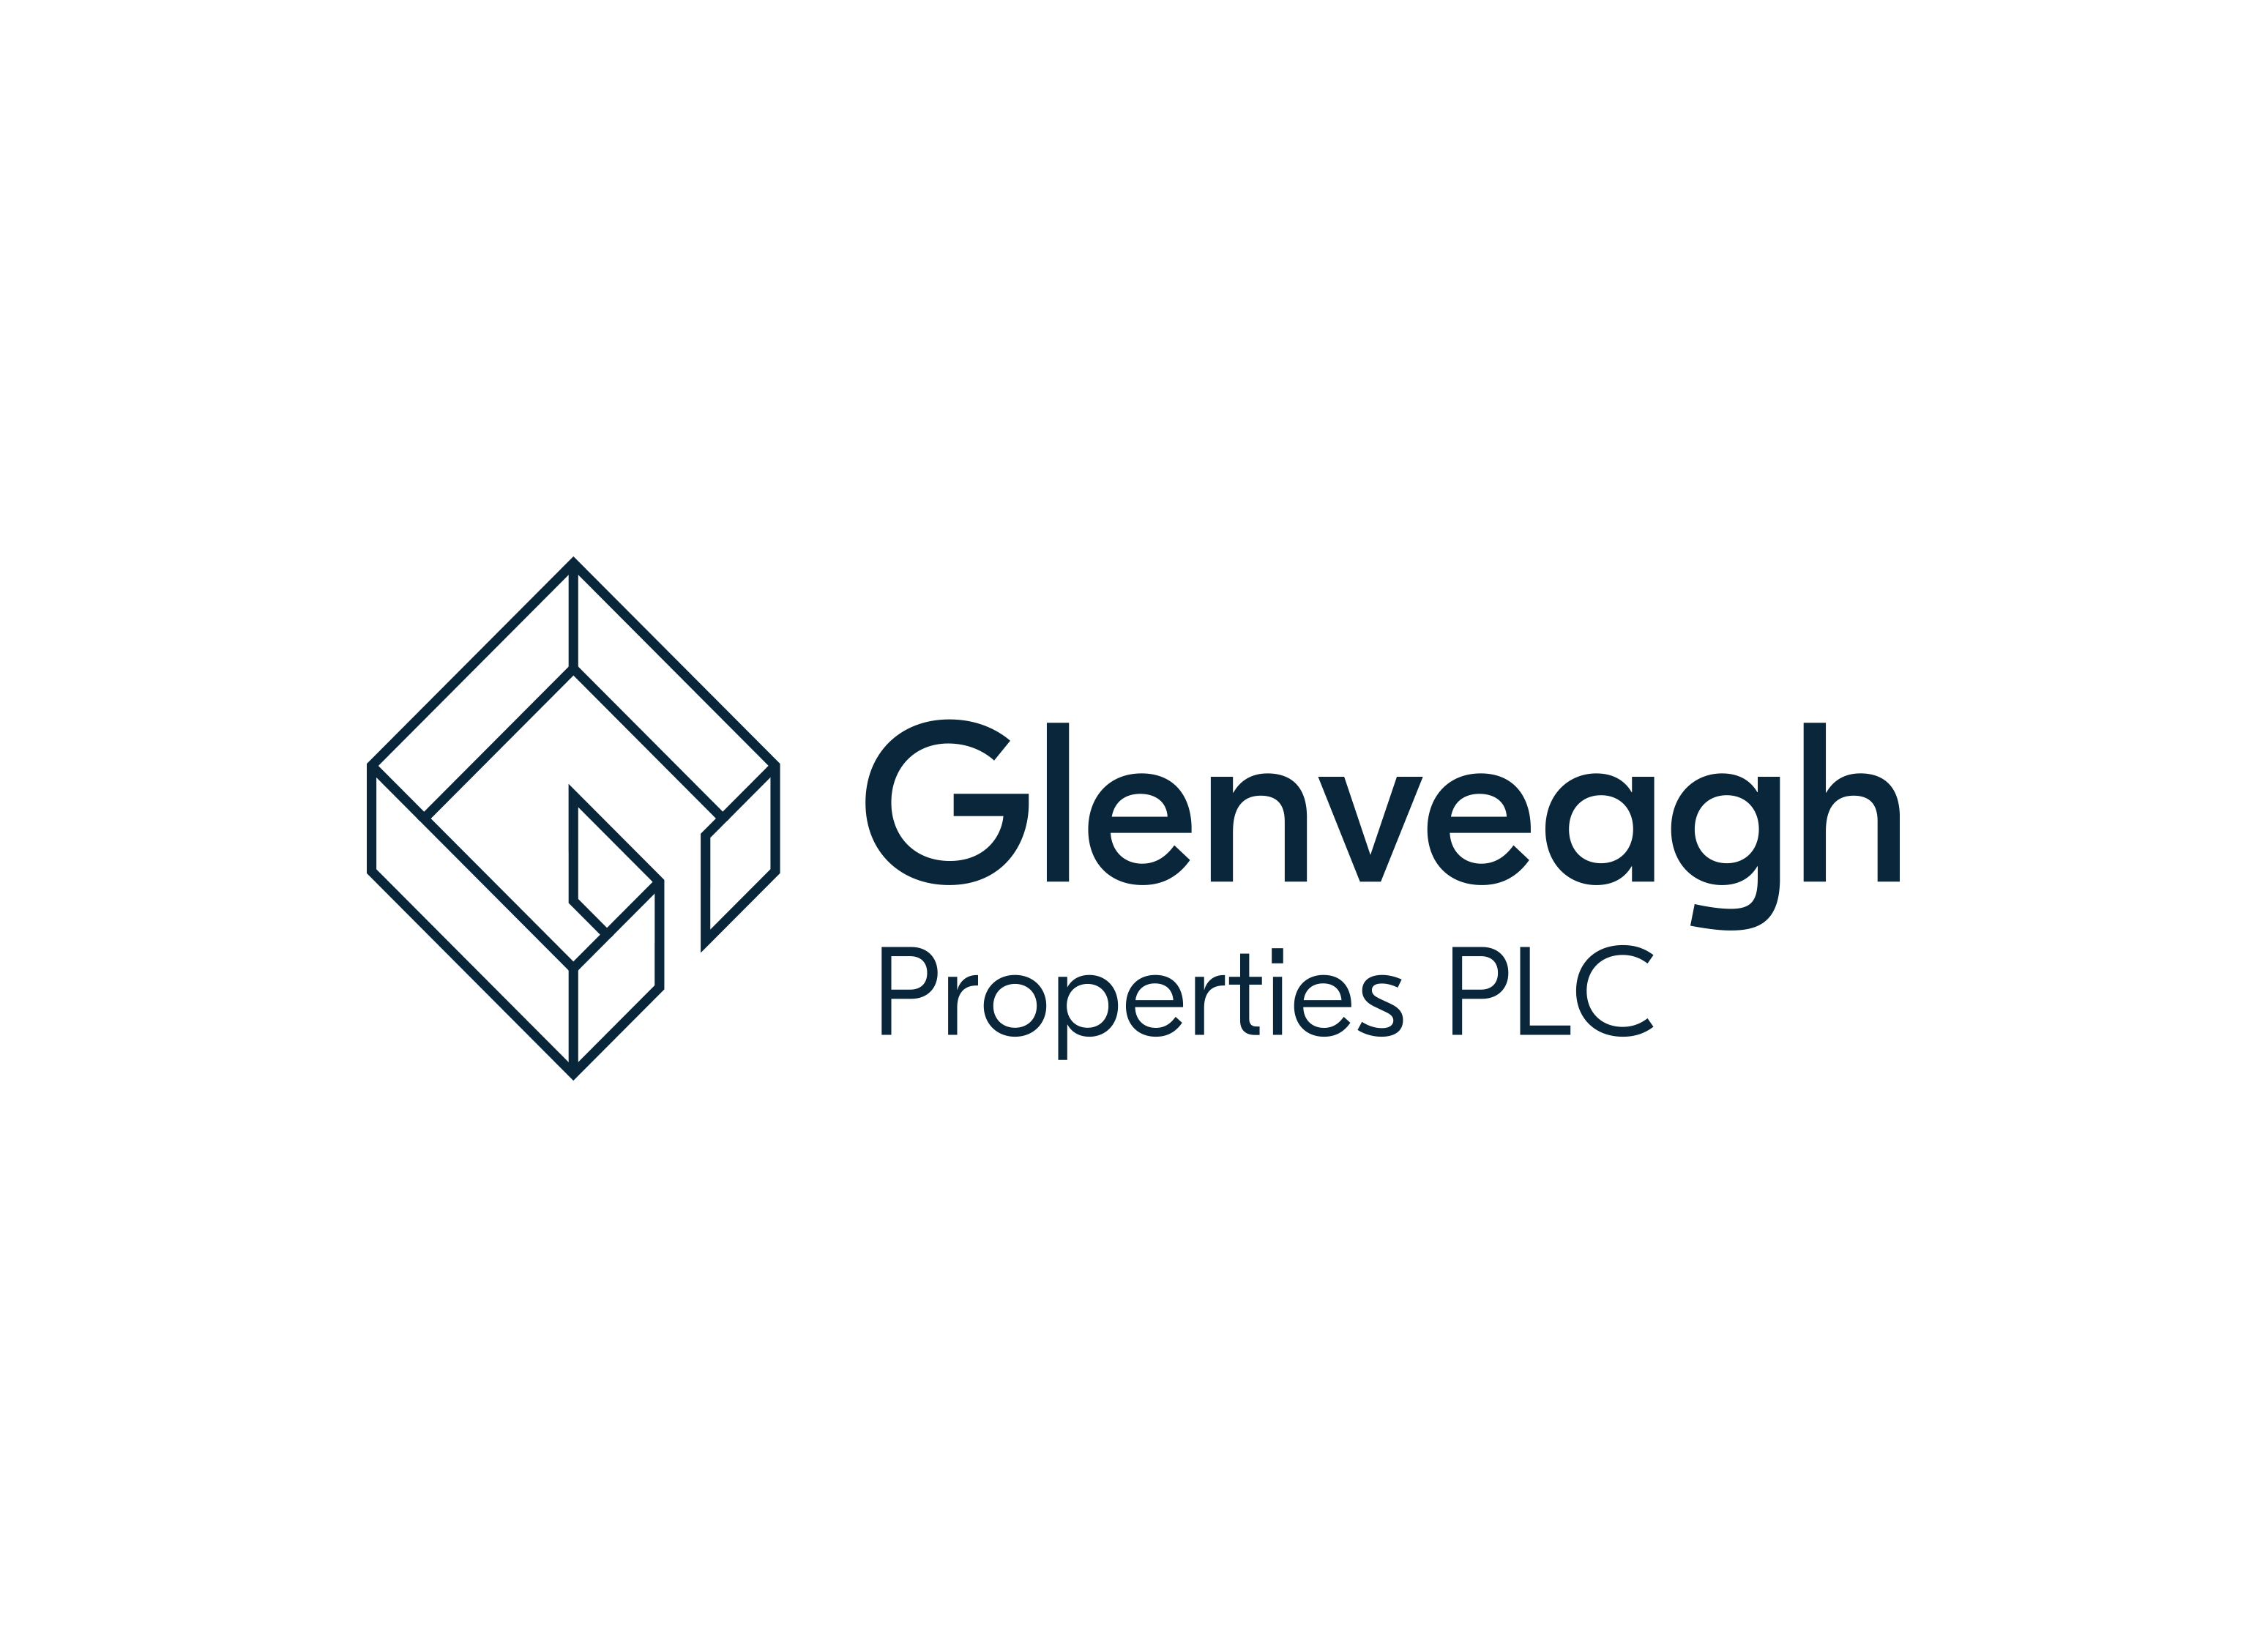 Glenveagh Properties to sponsor Construction Safety Week 2018